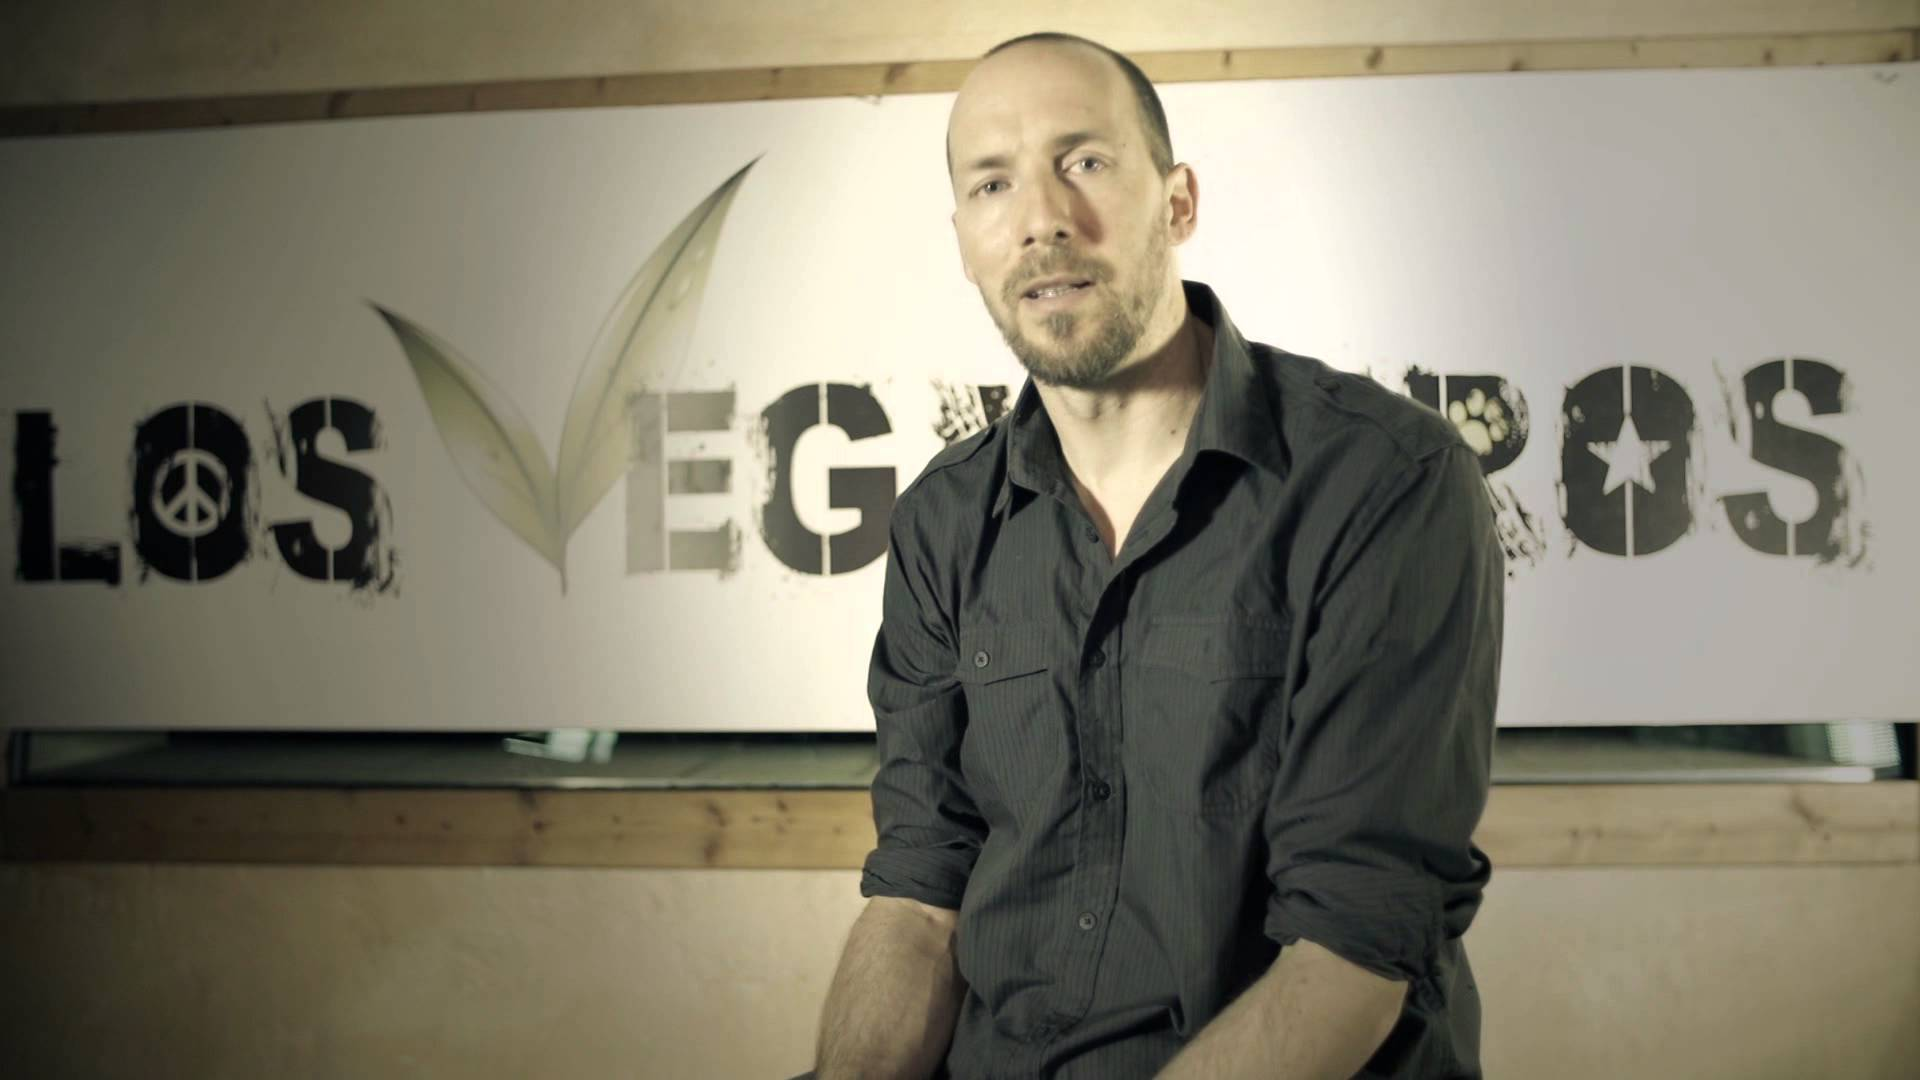 lars-oppermann_los-veganeros-2_kino_interview